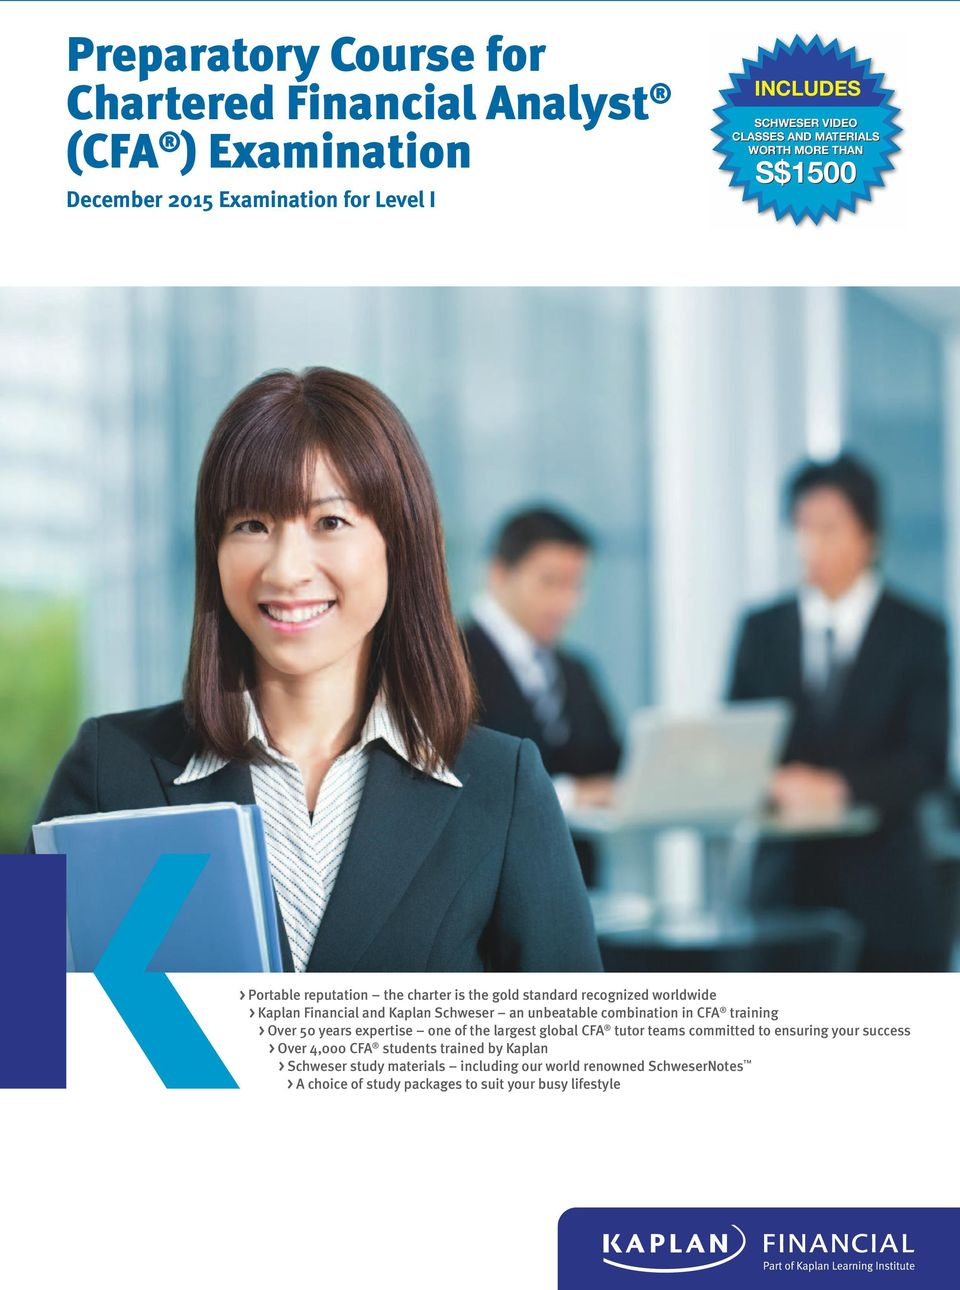 Preparatory Course for Chartered Financial Analyst (CFA